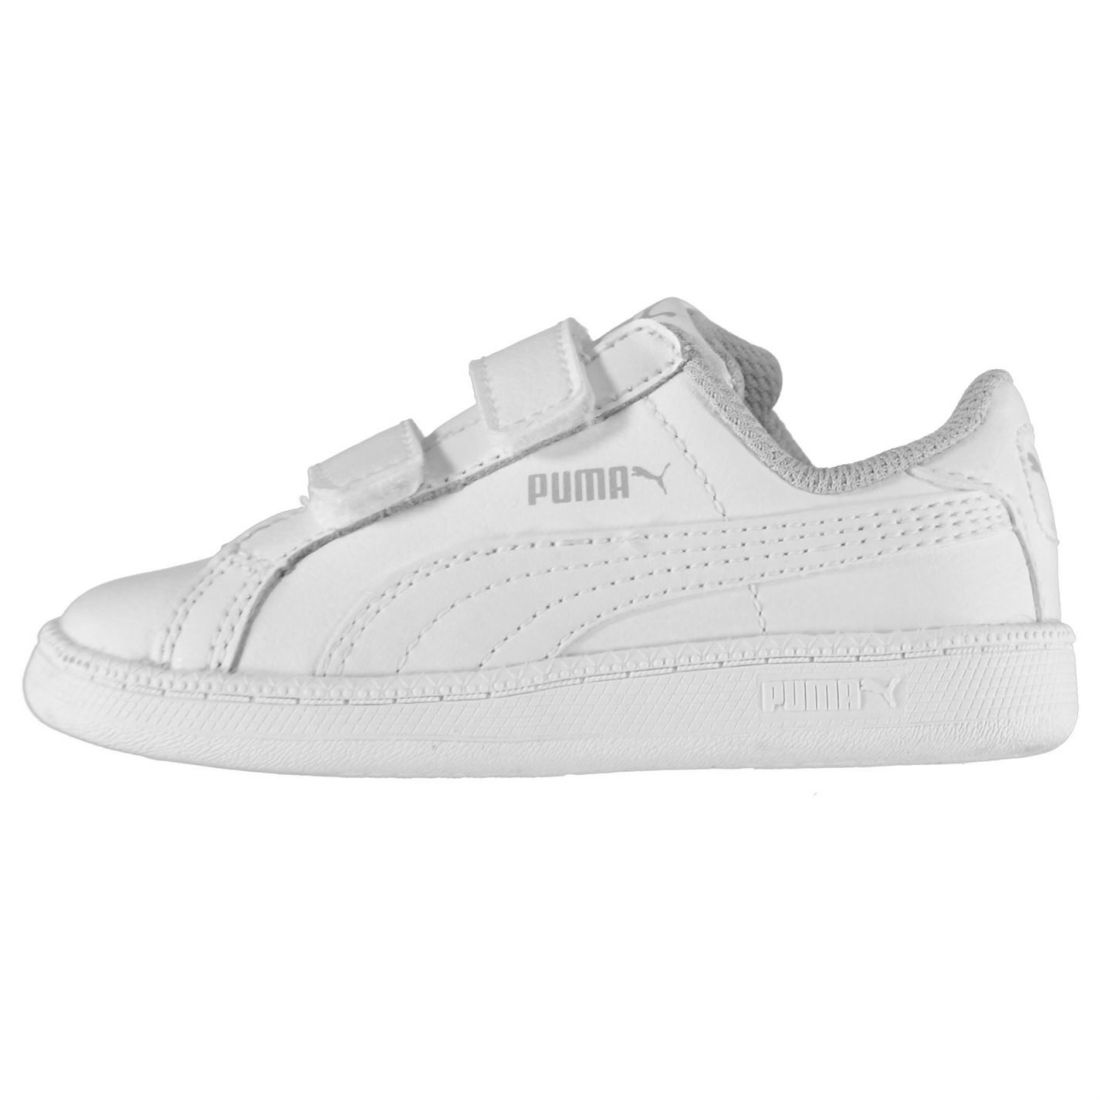 02a4df5b2dc Details about Puma Kids Smash Suede Fun Court Trainers Infant Boys Shoes  Touch and Close Strap